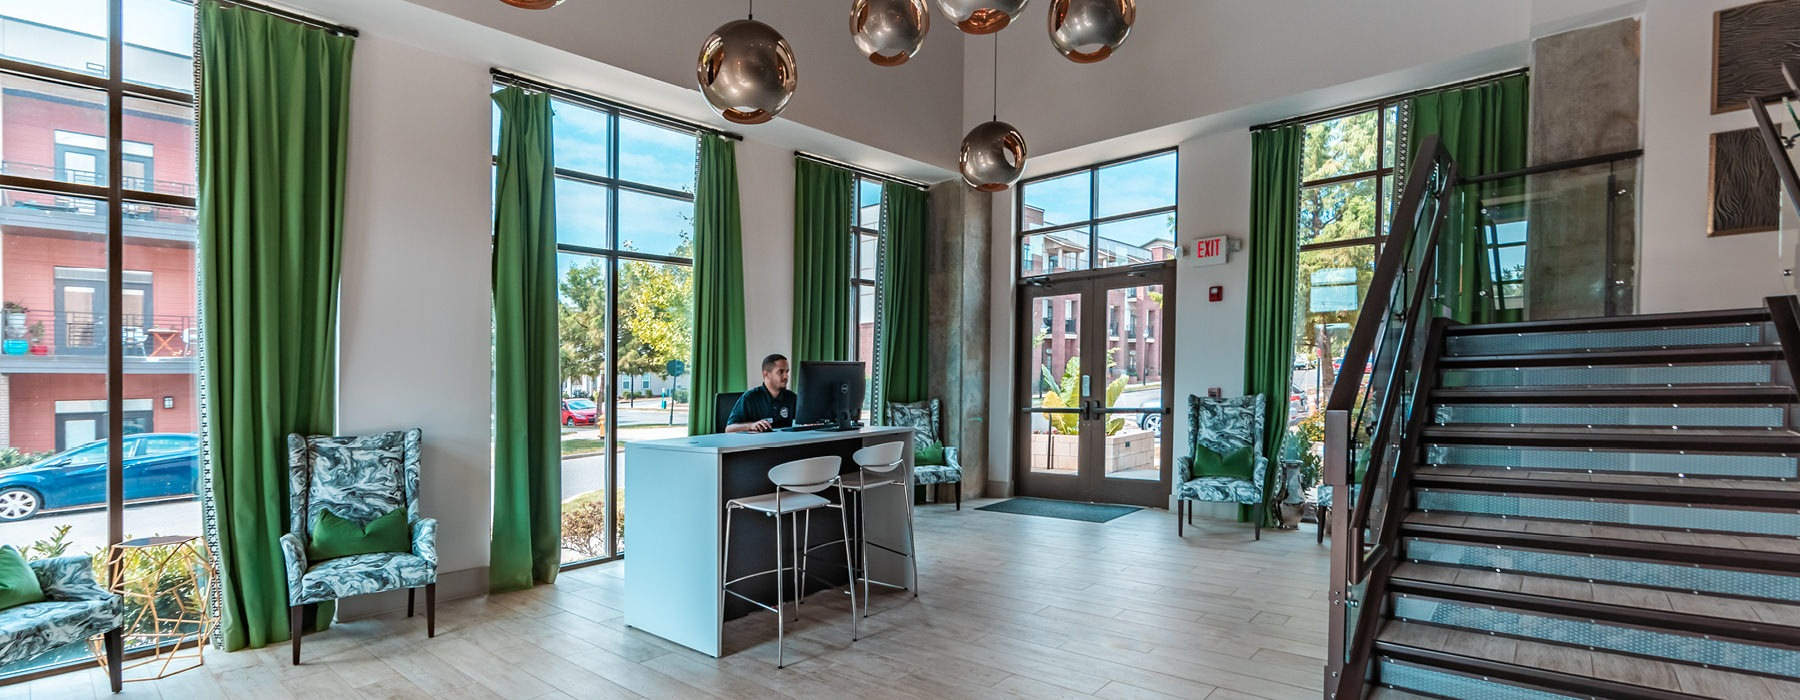 Leasing office has floor-to-ceiling windows and industrial features